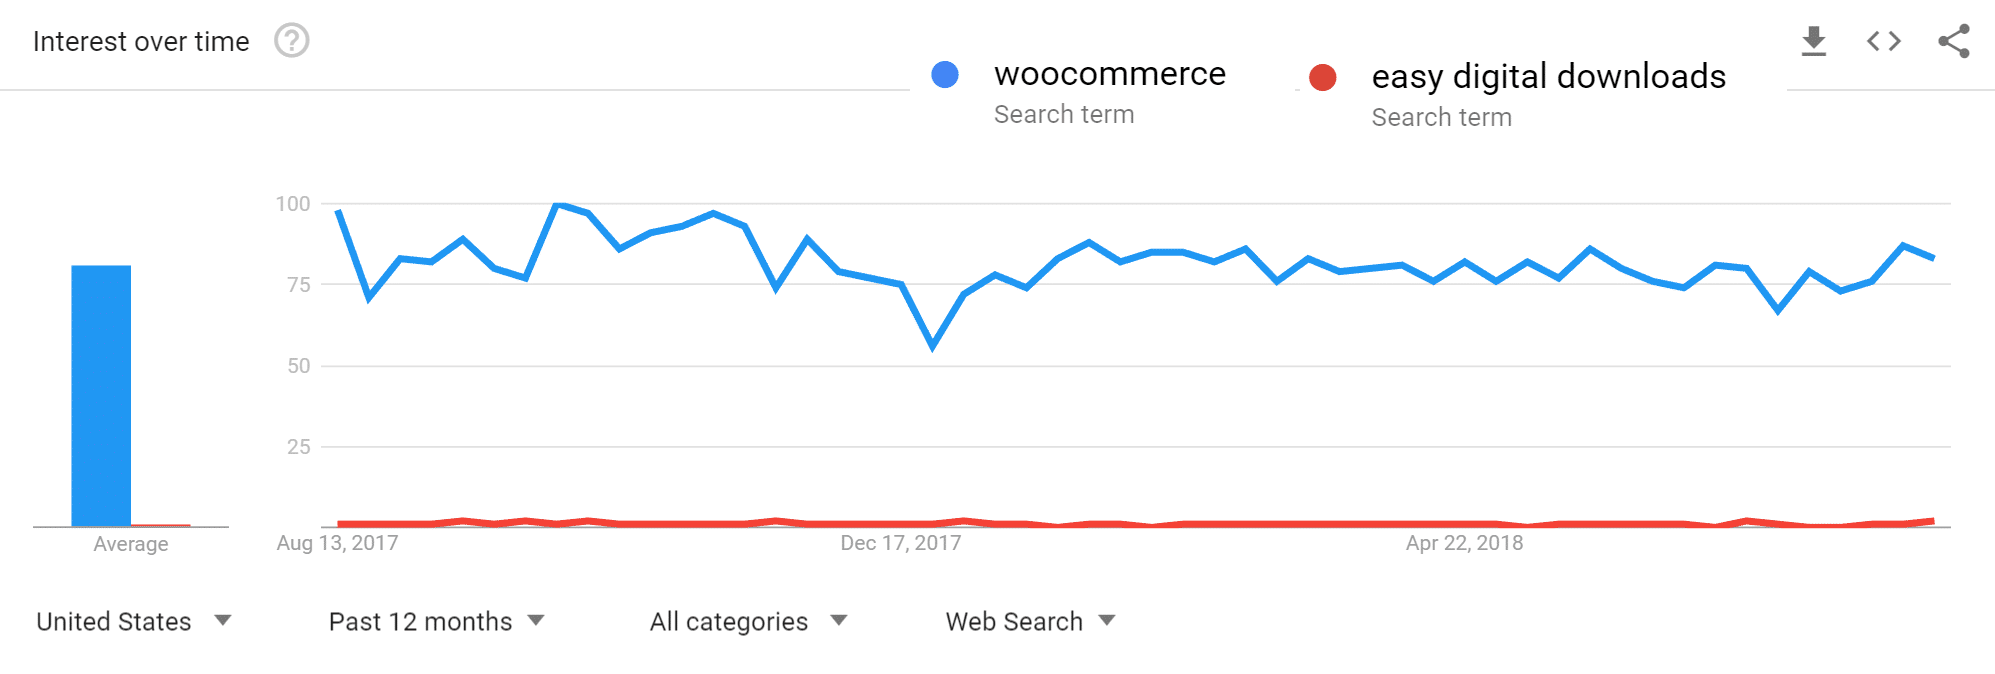 Tendências do Google - WooCommerce vs Easy Digital Downloads